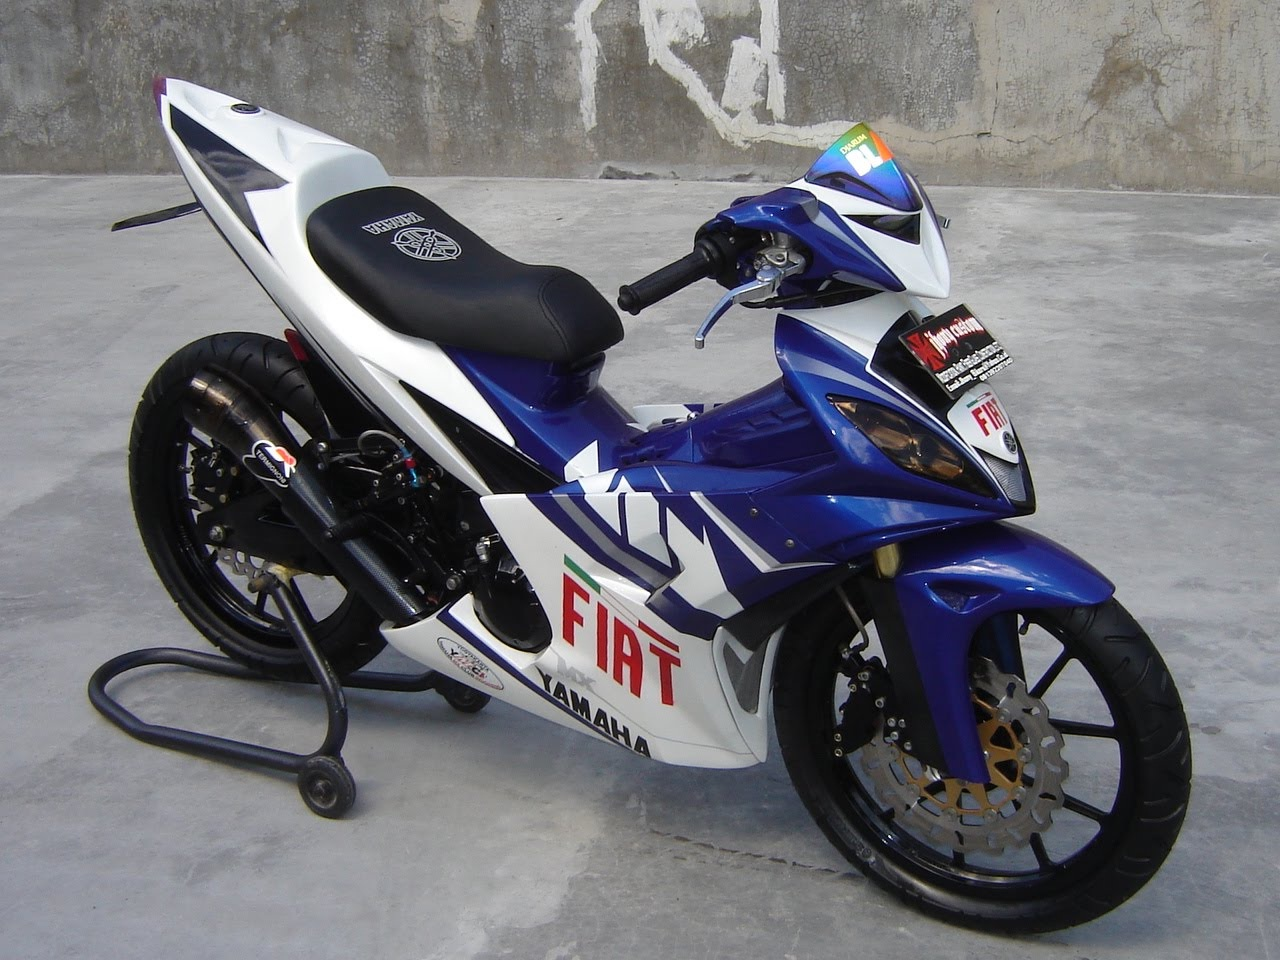 Modifikasi Jupiter Mx Biru Putih